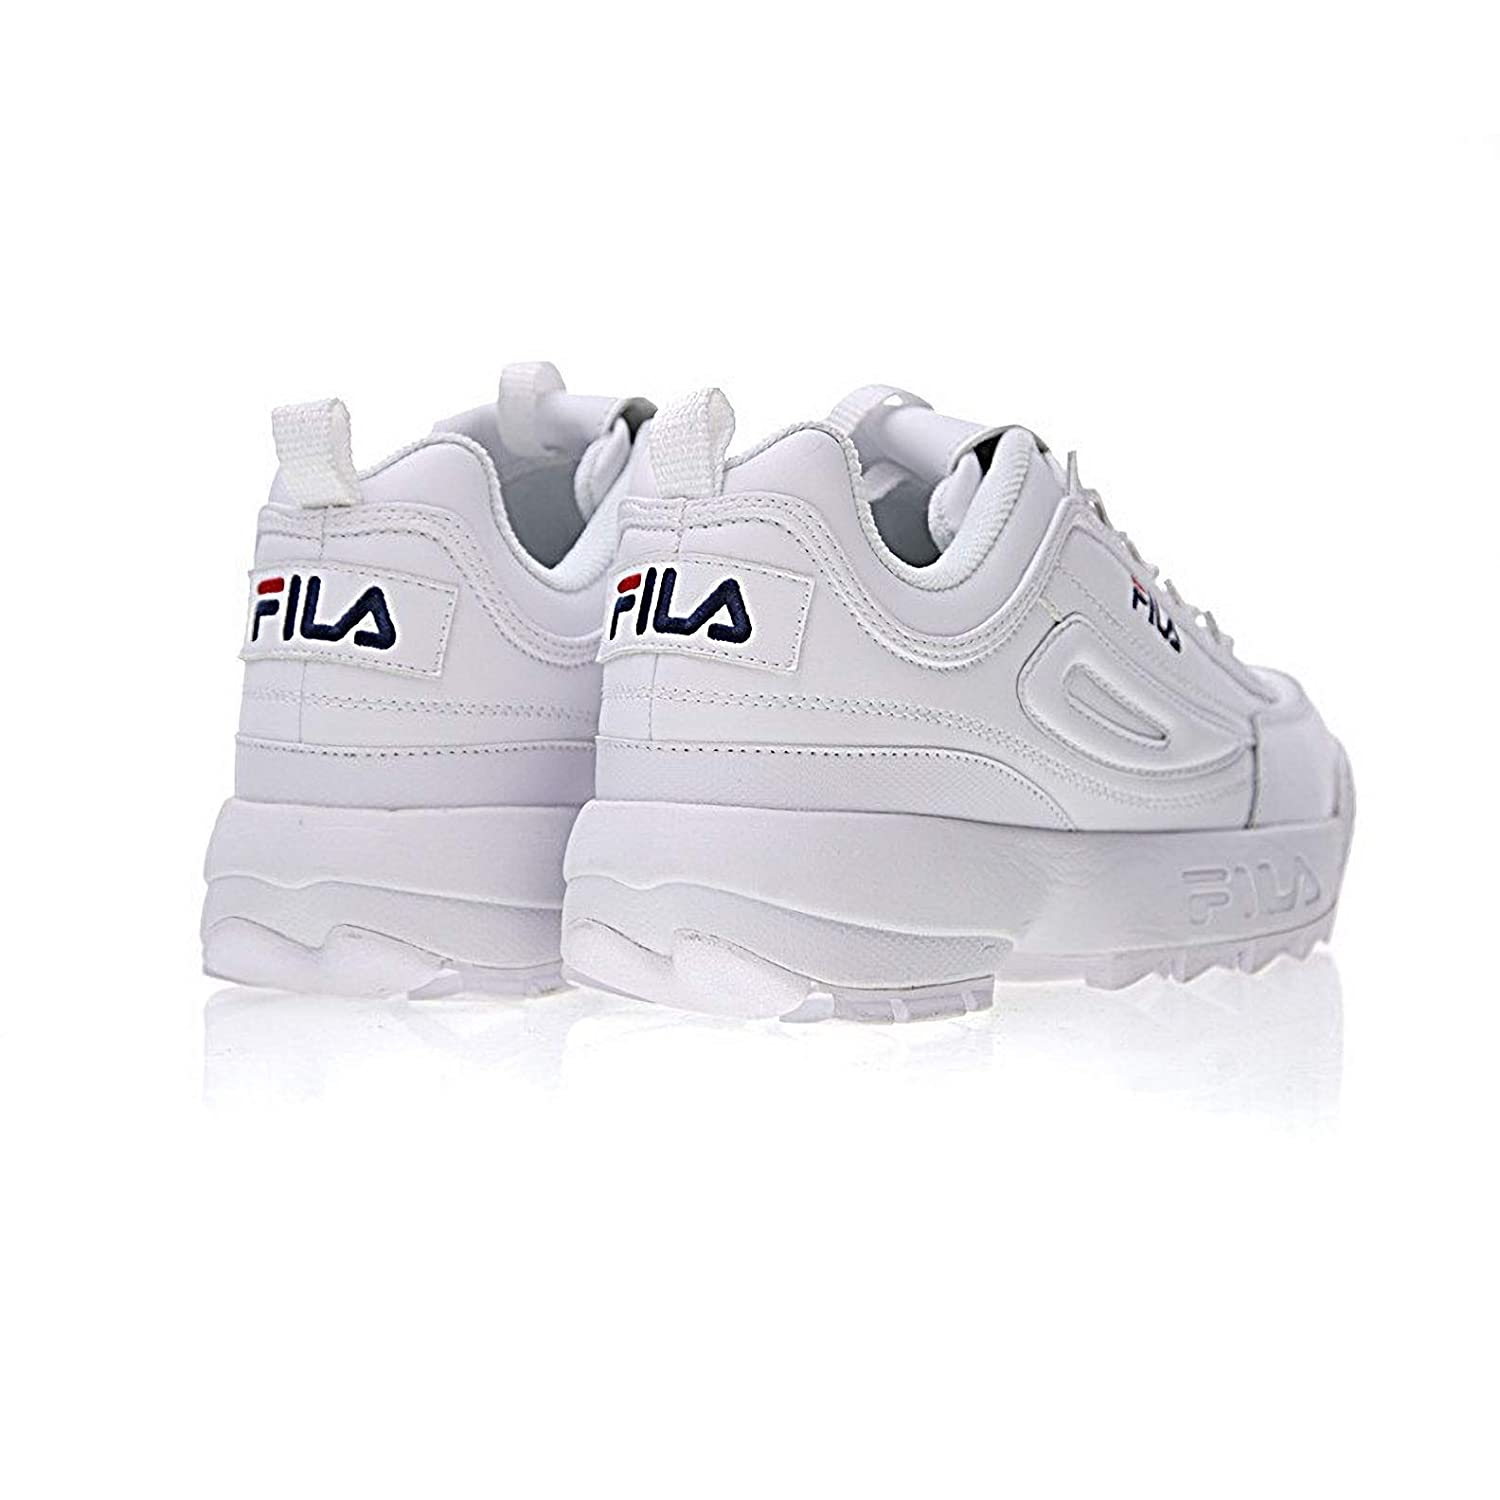 ba496ec01ee3 FlLA Disruptor II 2 Low Mujer Low Baskets Zapatillas